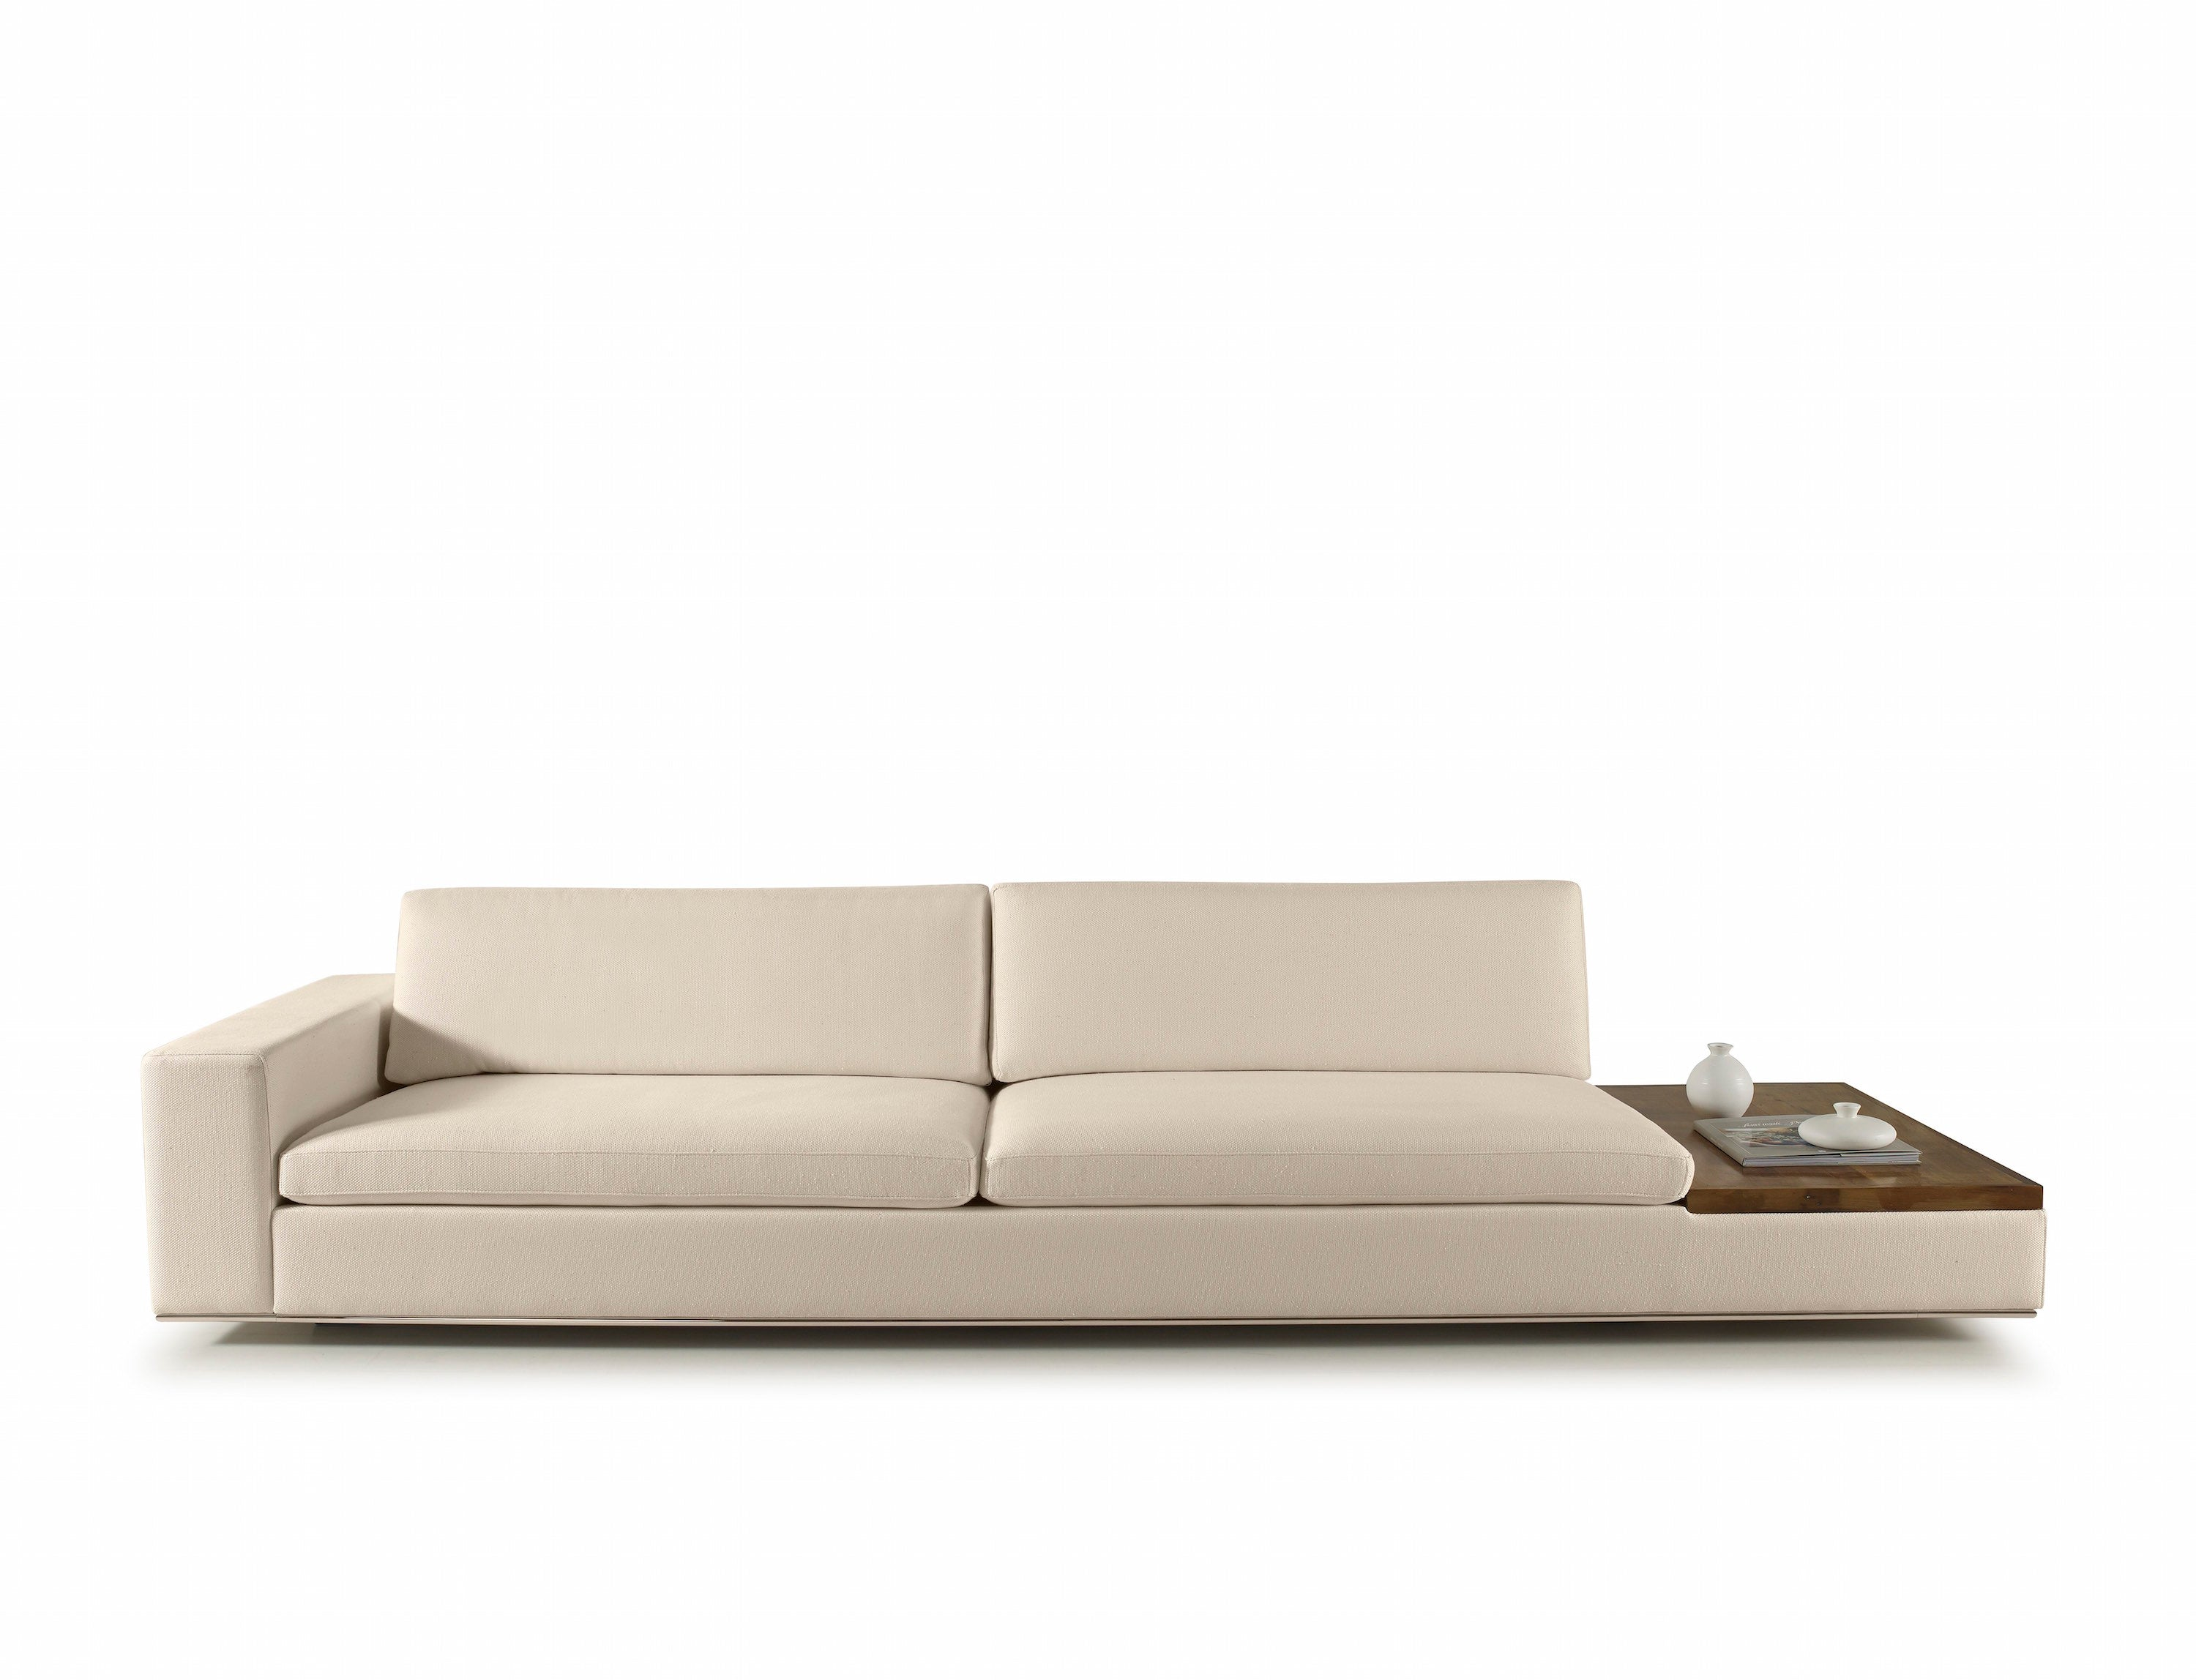 Zurique sofa by Studio Feeling - Kelly Christian Designs